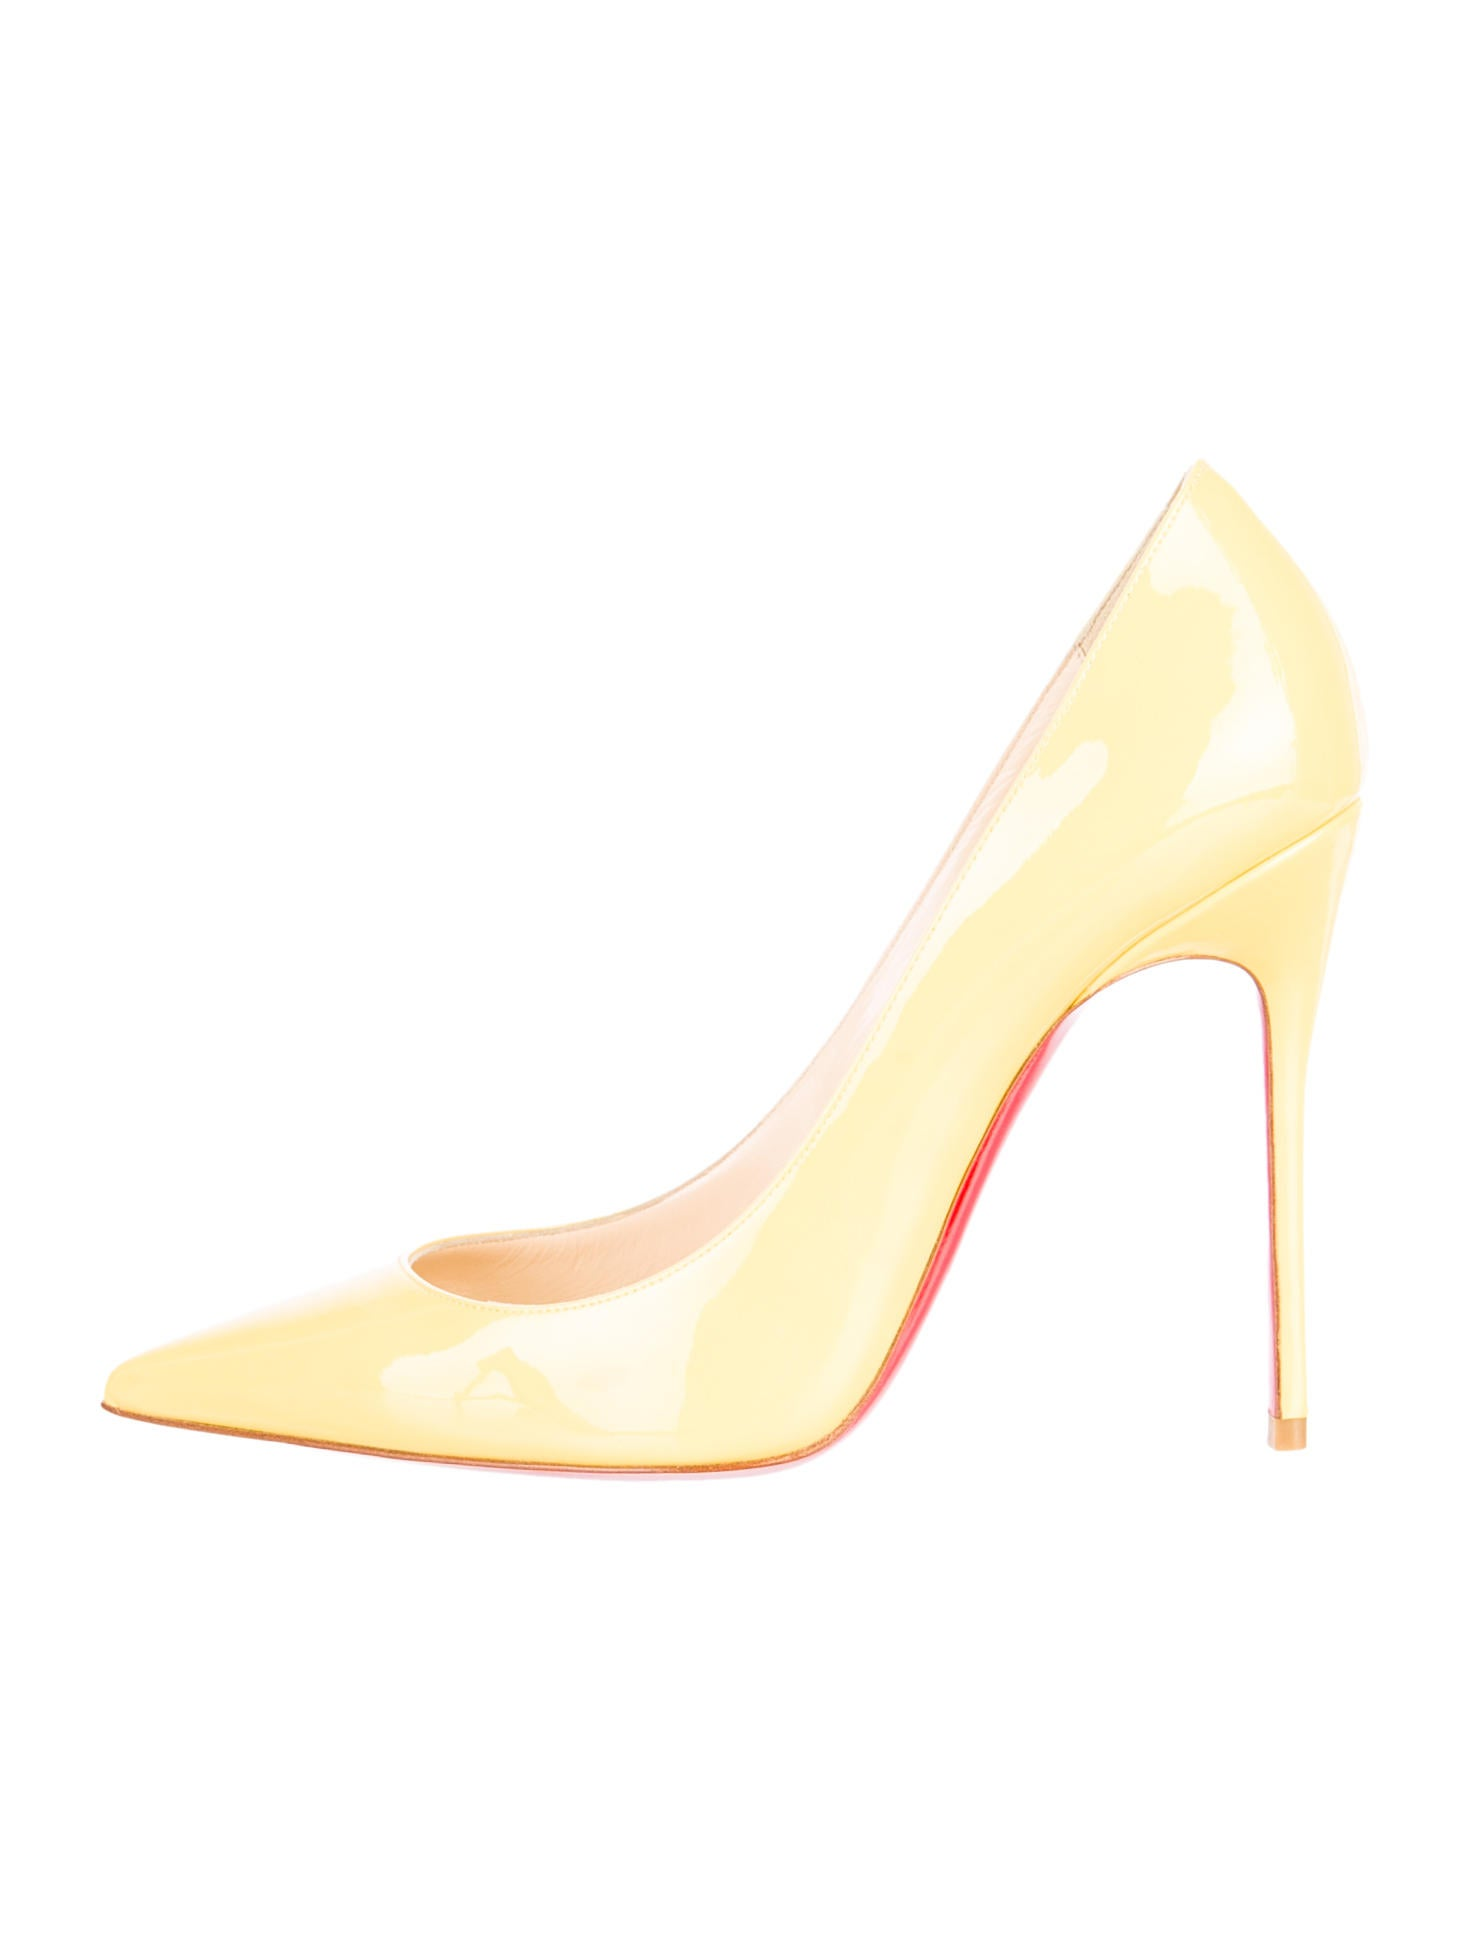 christian louboutin Decolette pointed-toe pumps Yellow patent ...